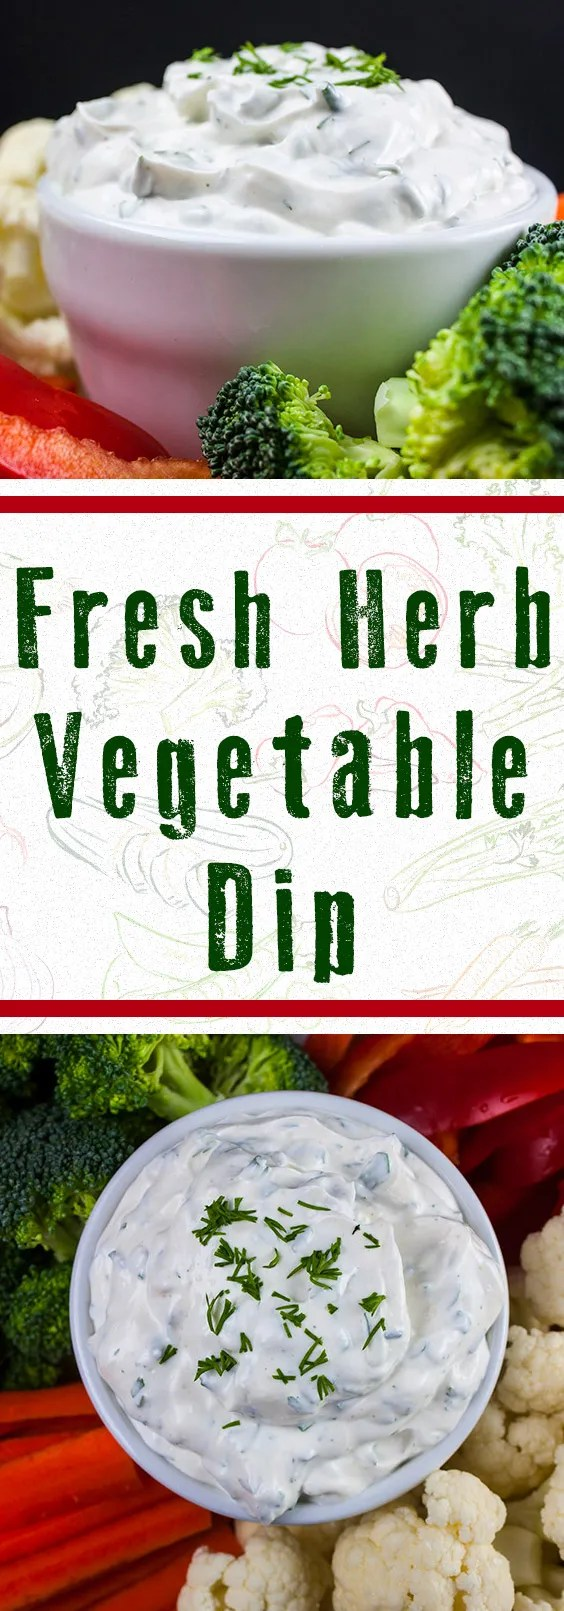 Fresh Herb Vegetable Dip - Light, cool,creamy, and seasoned to perfection with fresh herbs. Perfect dip for garden fresh veggies!